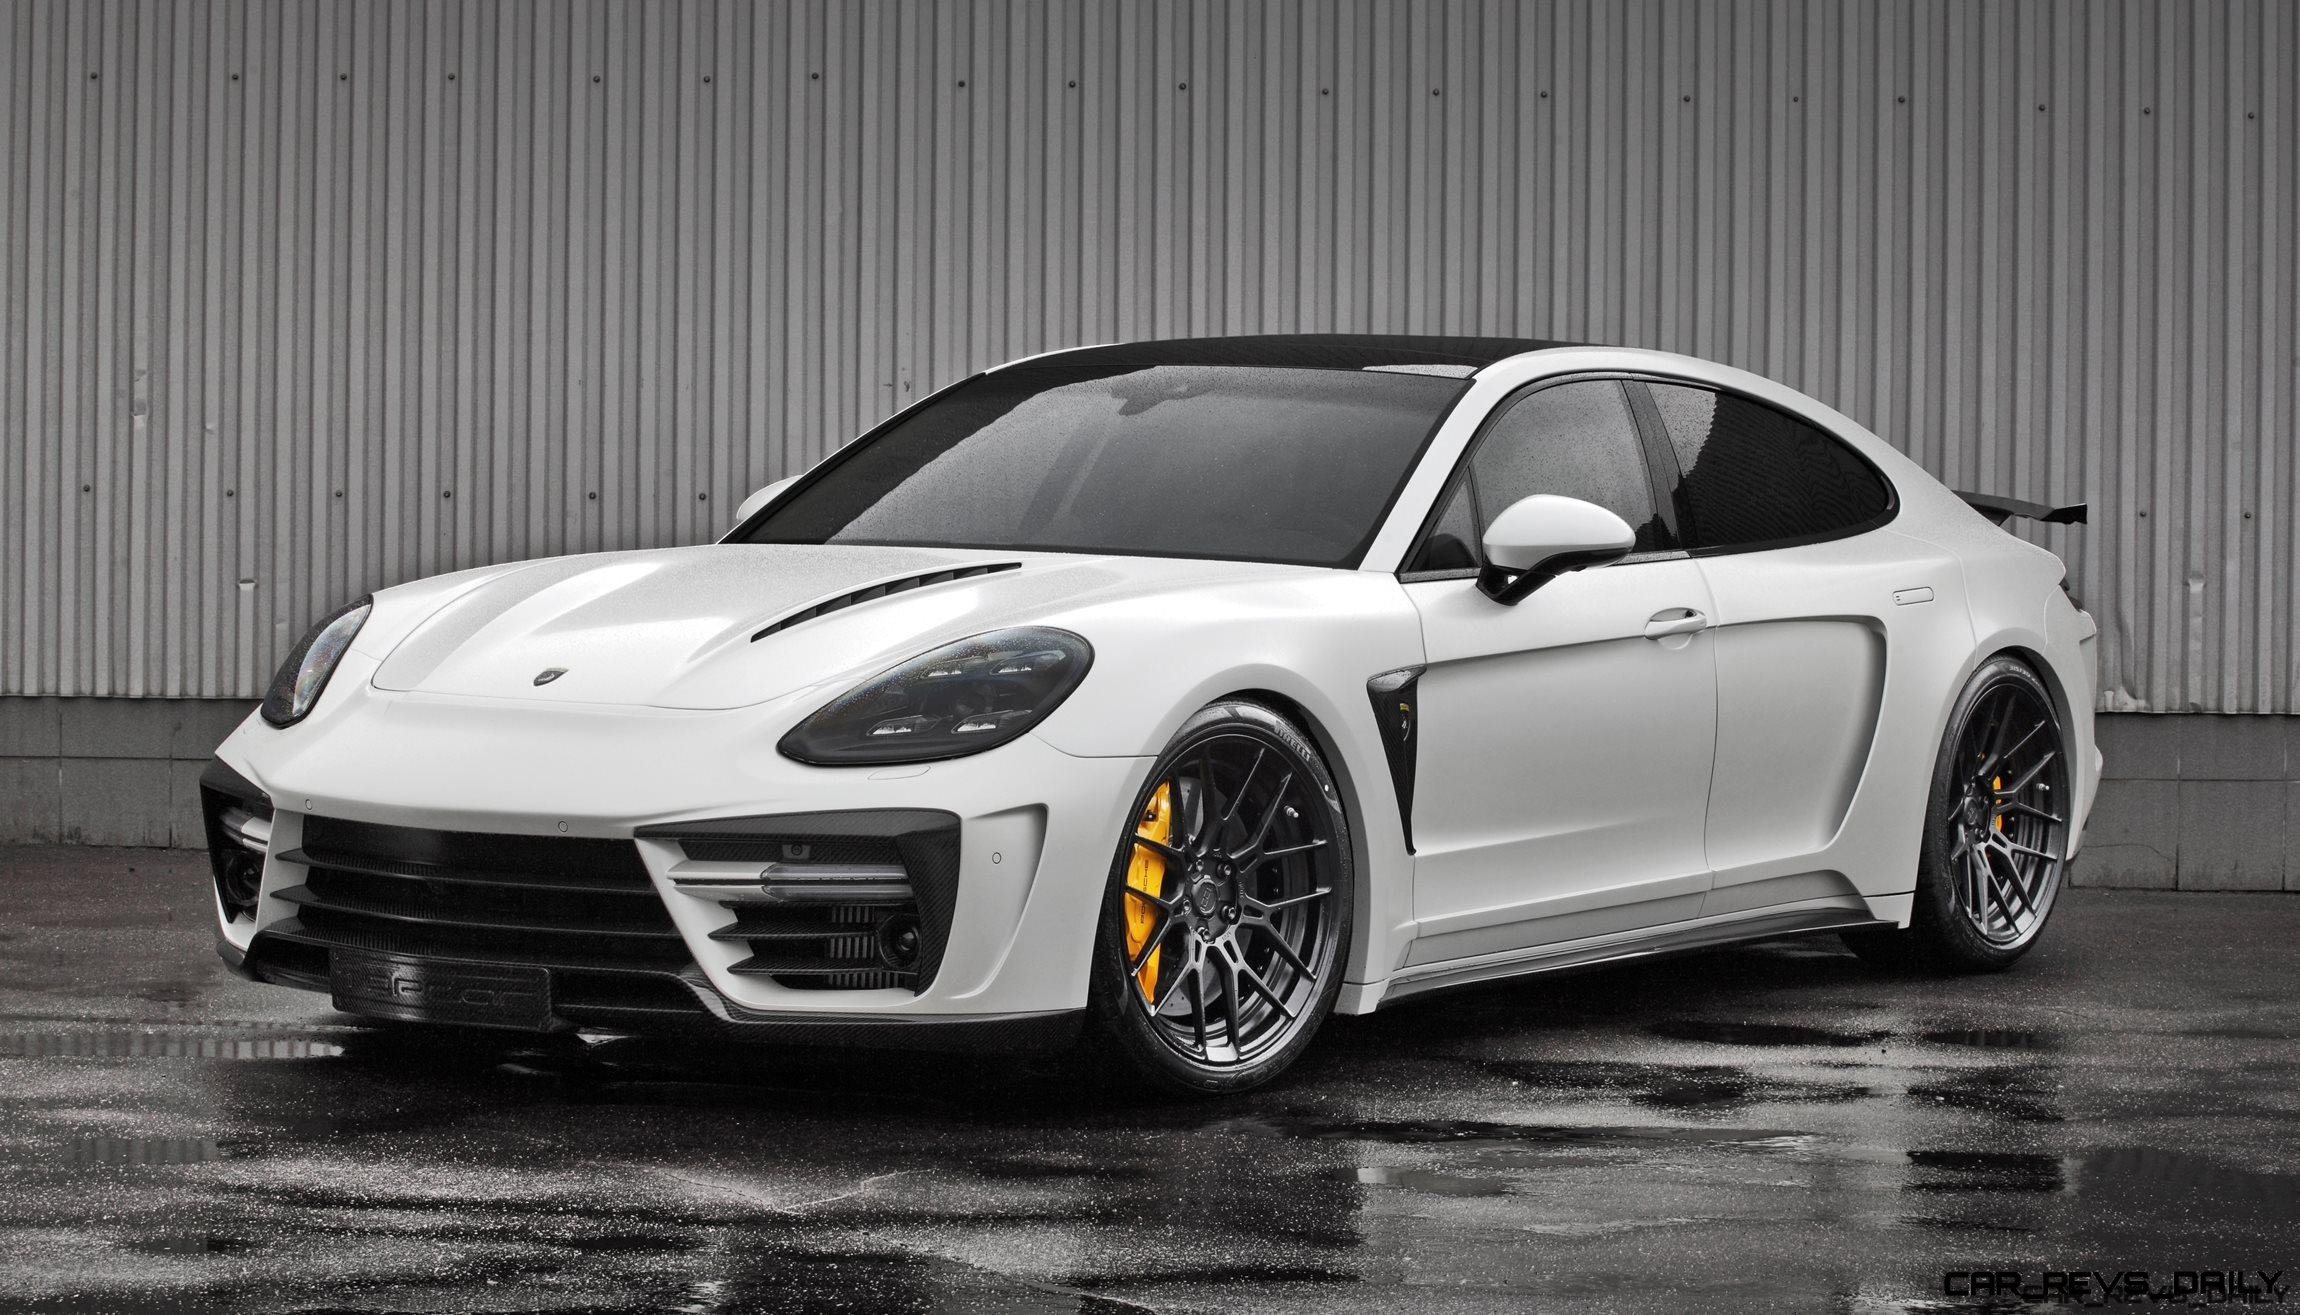 porsche-panamera-971-stingray-gtr-edition_2493